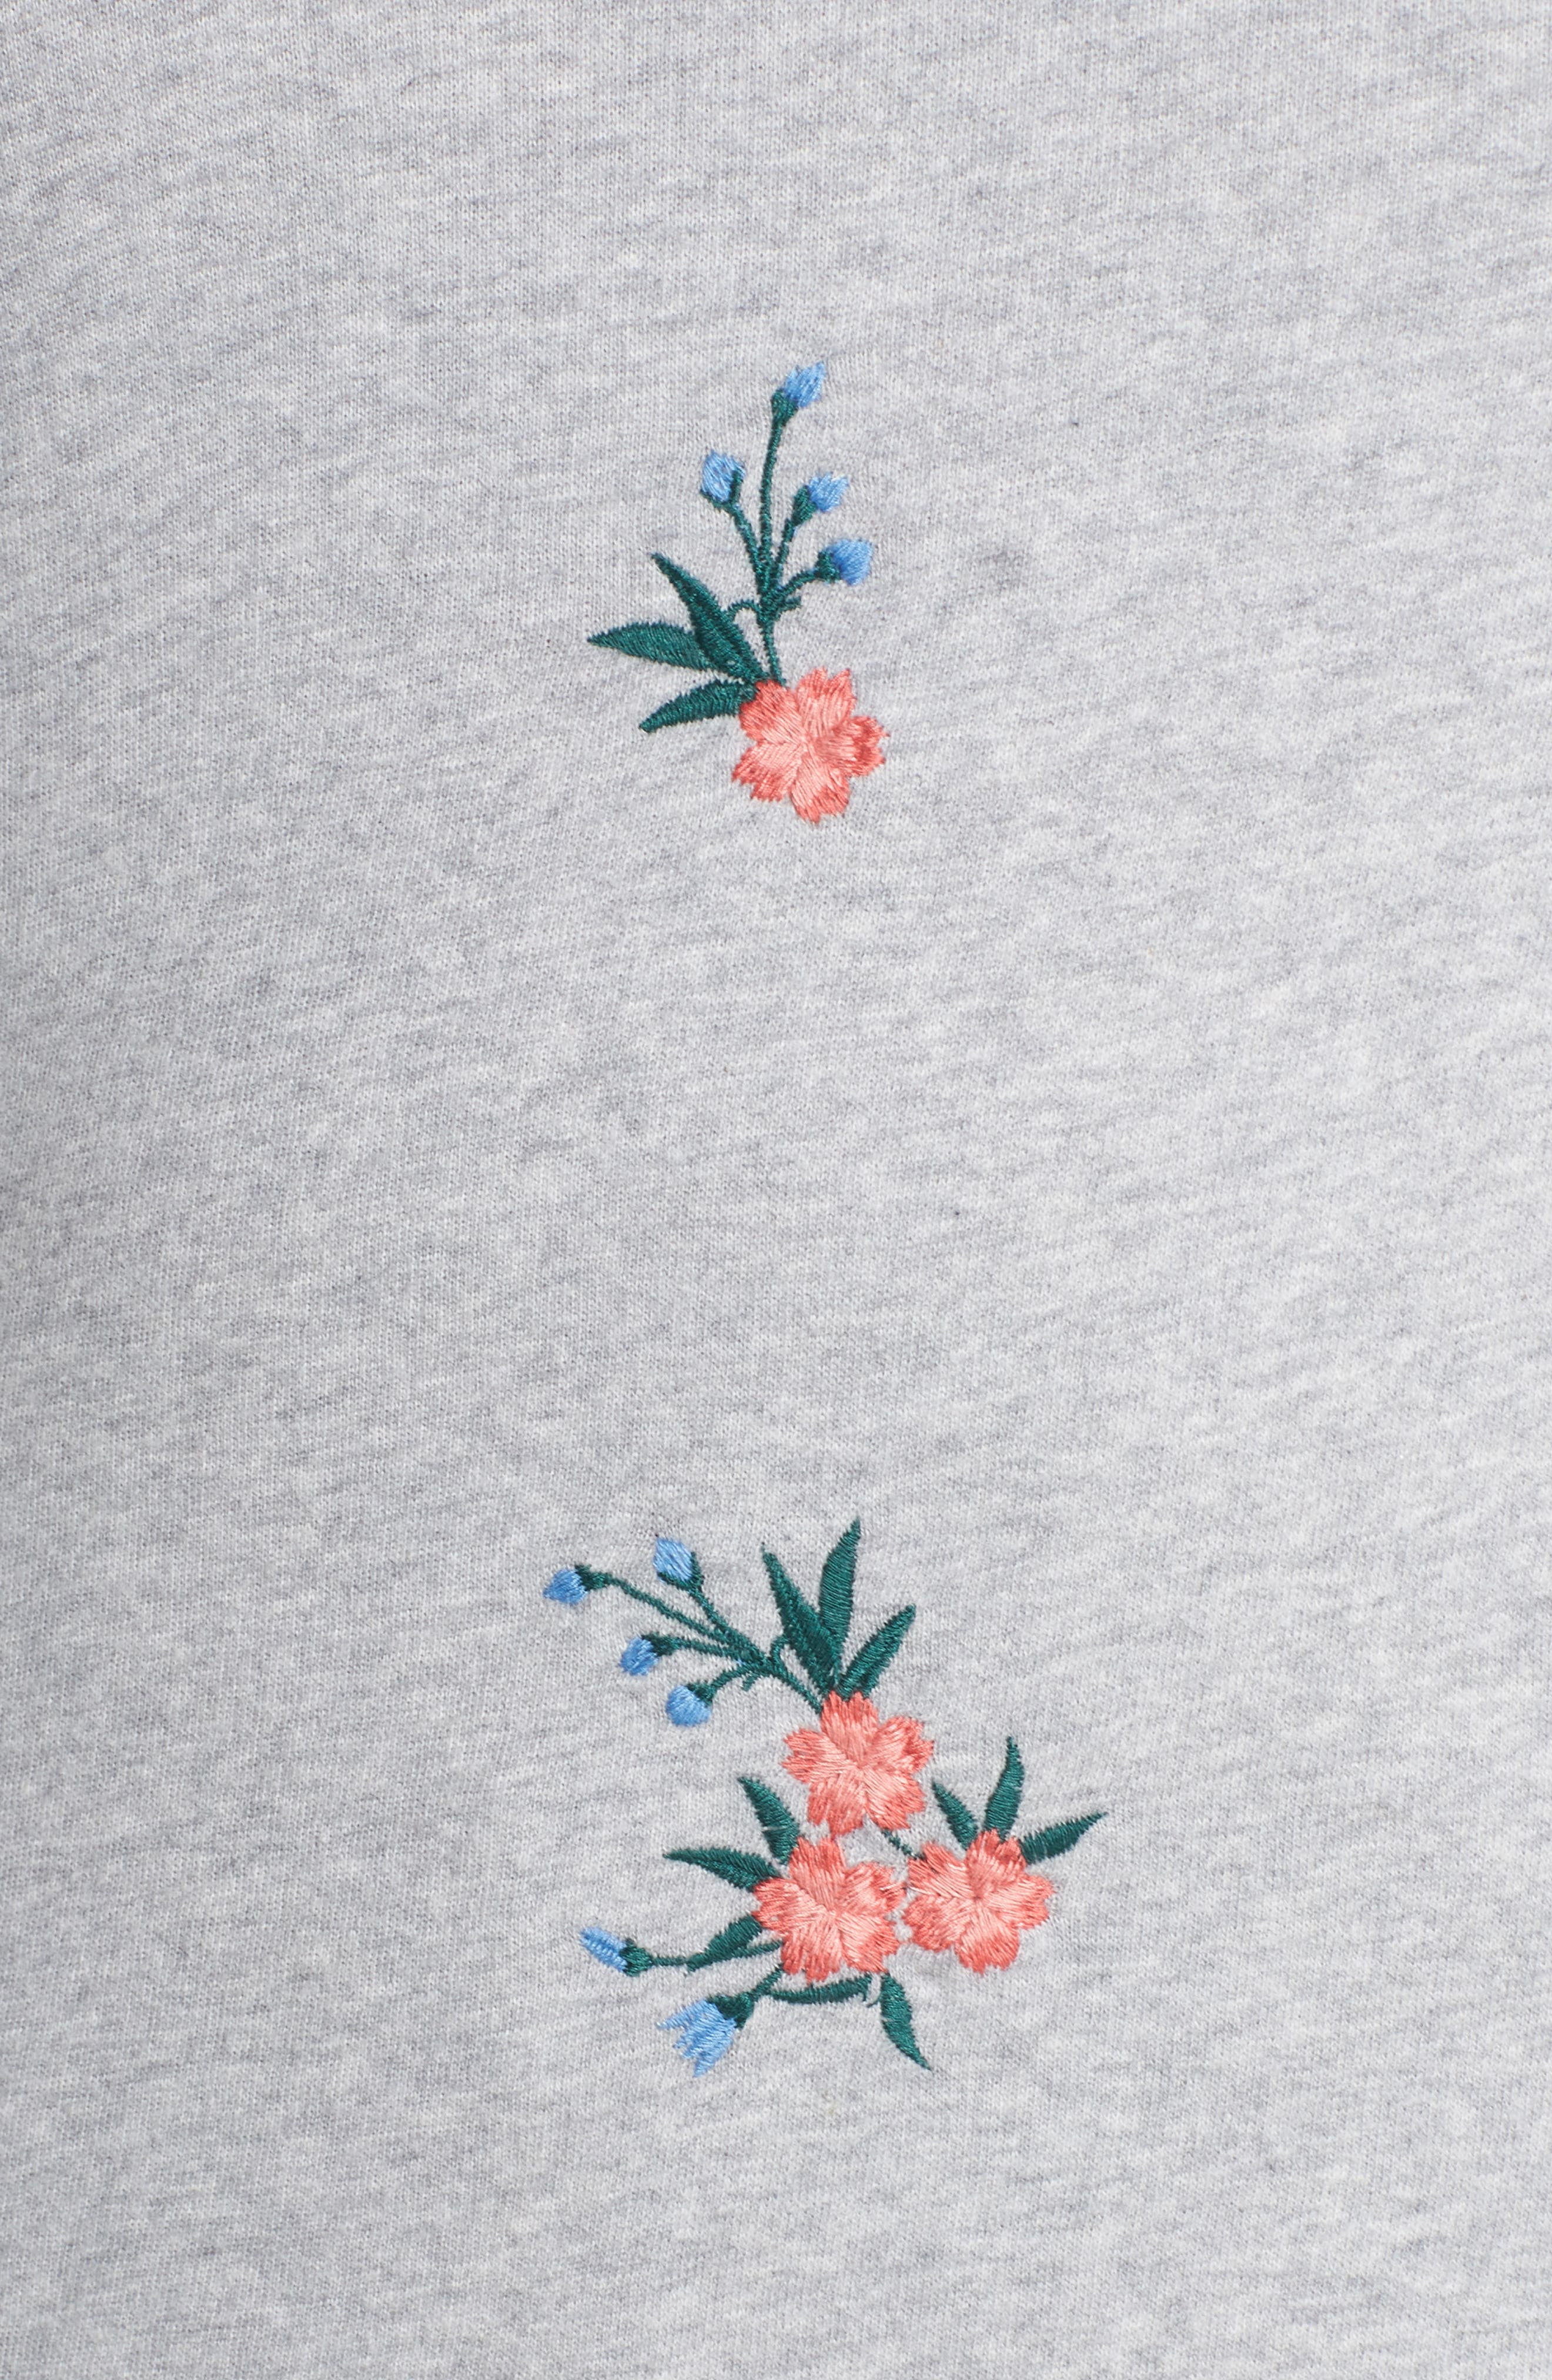 Embroidered Cotton Sweatshirt,                             Alternate thumbnail 5, color,                             030